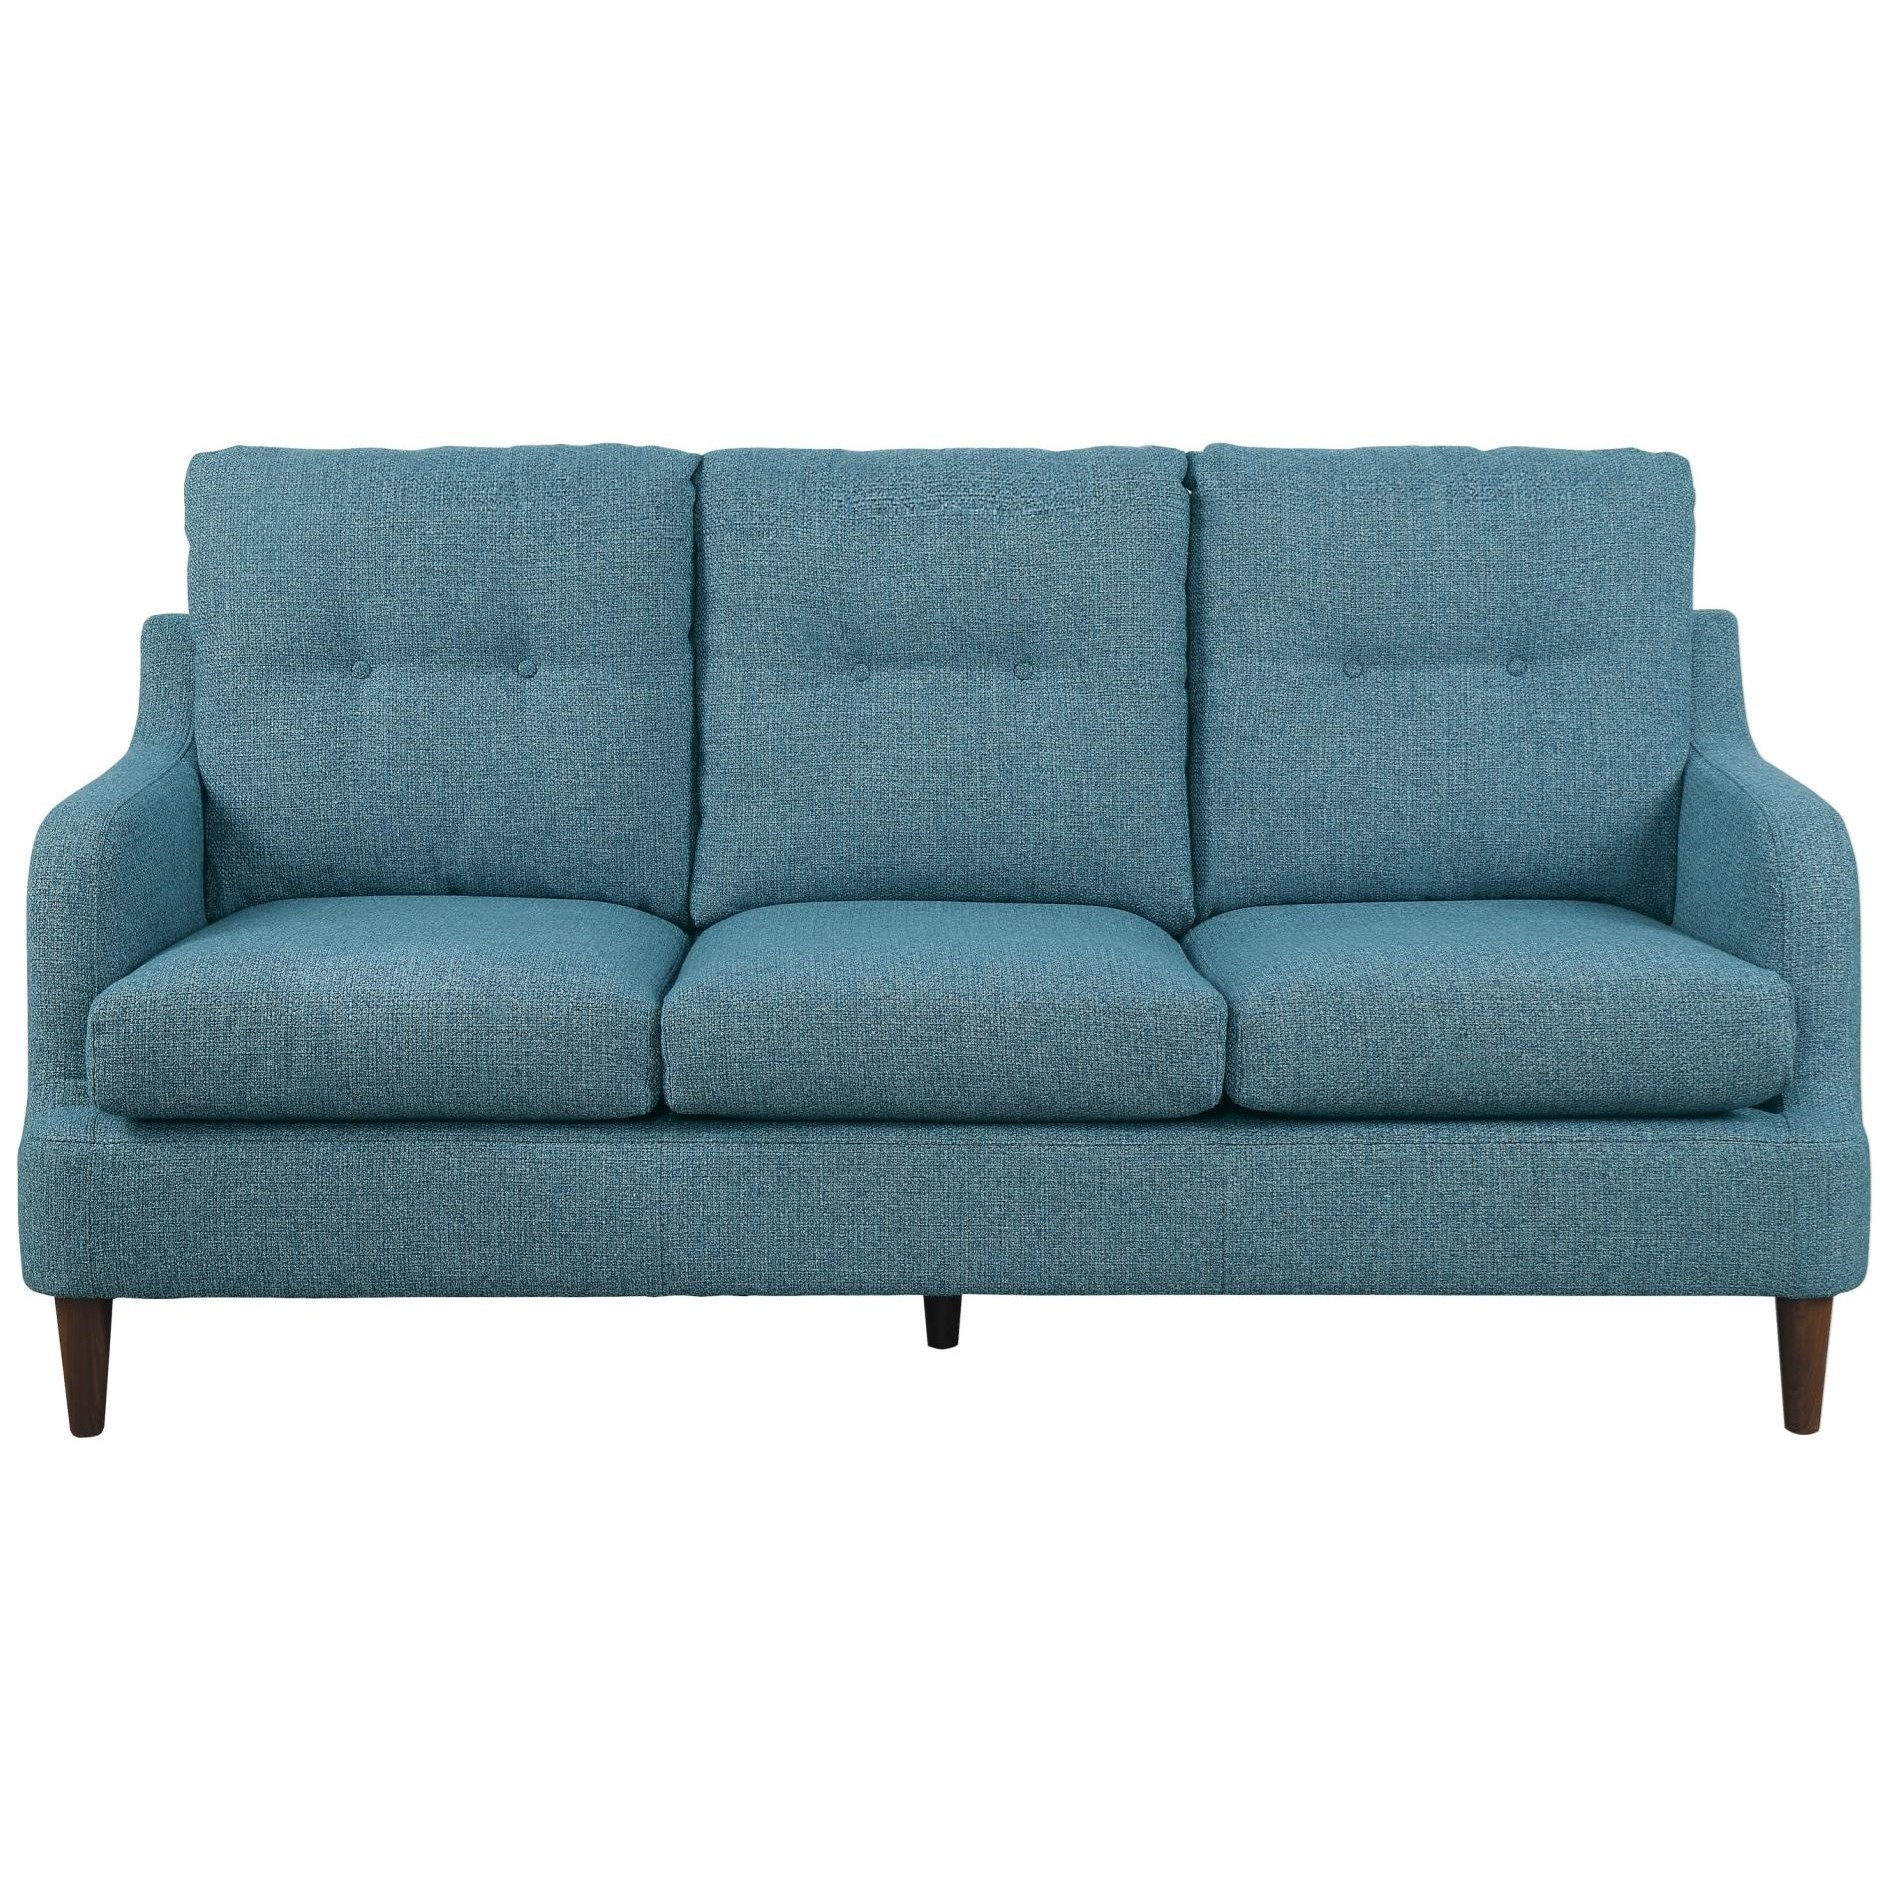 Cagle Sofa by Homelegance at Rooms for Less